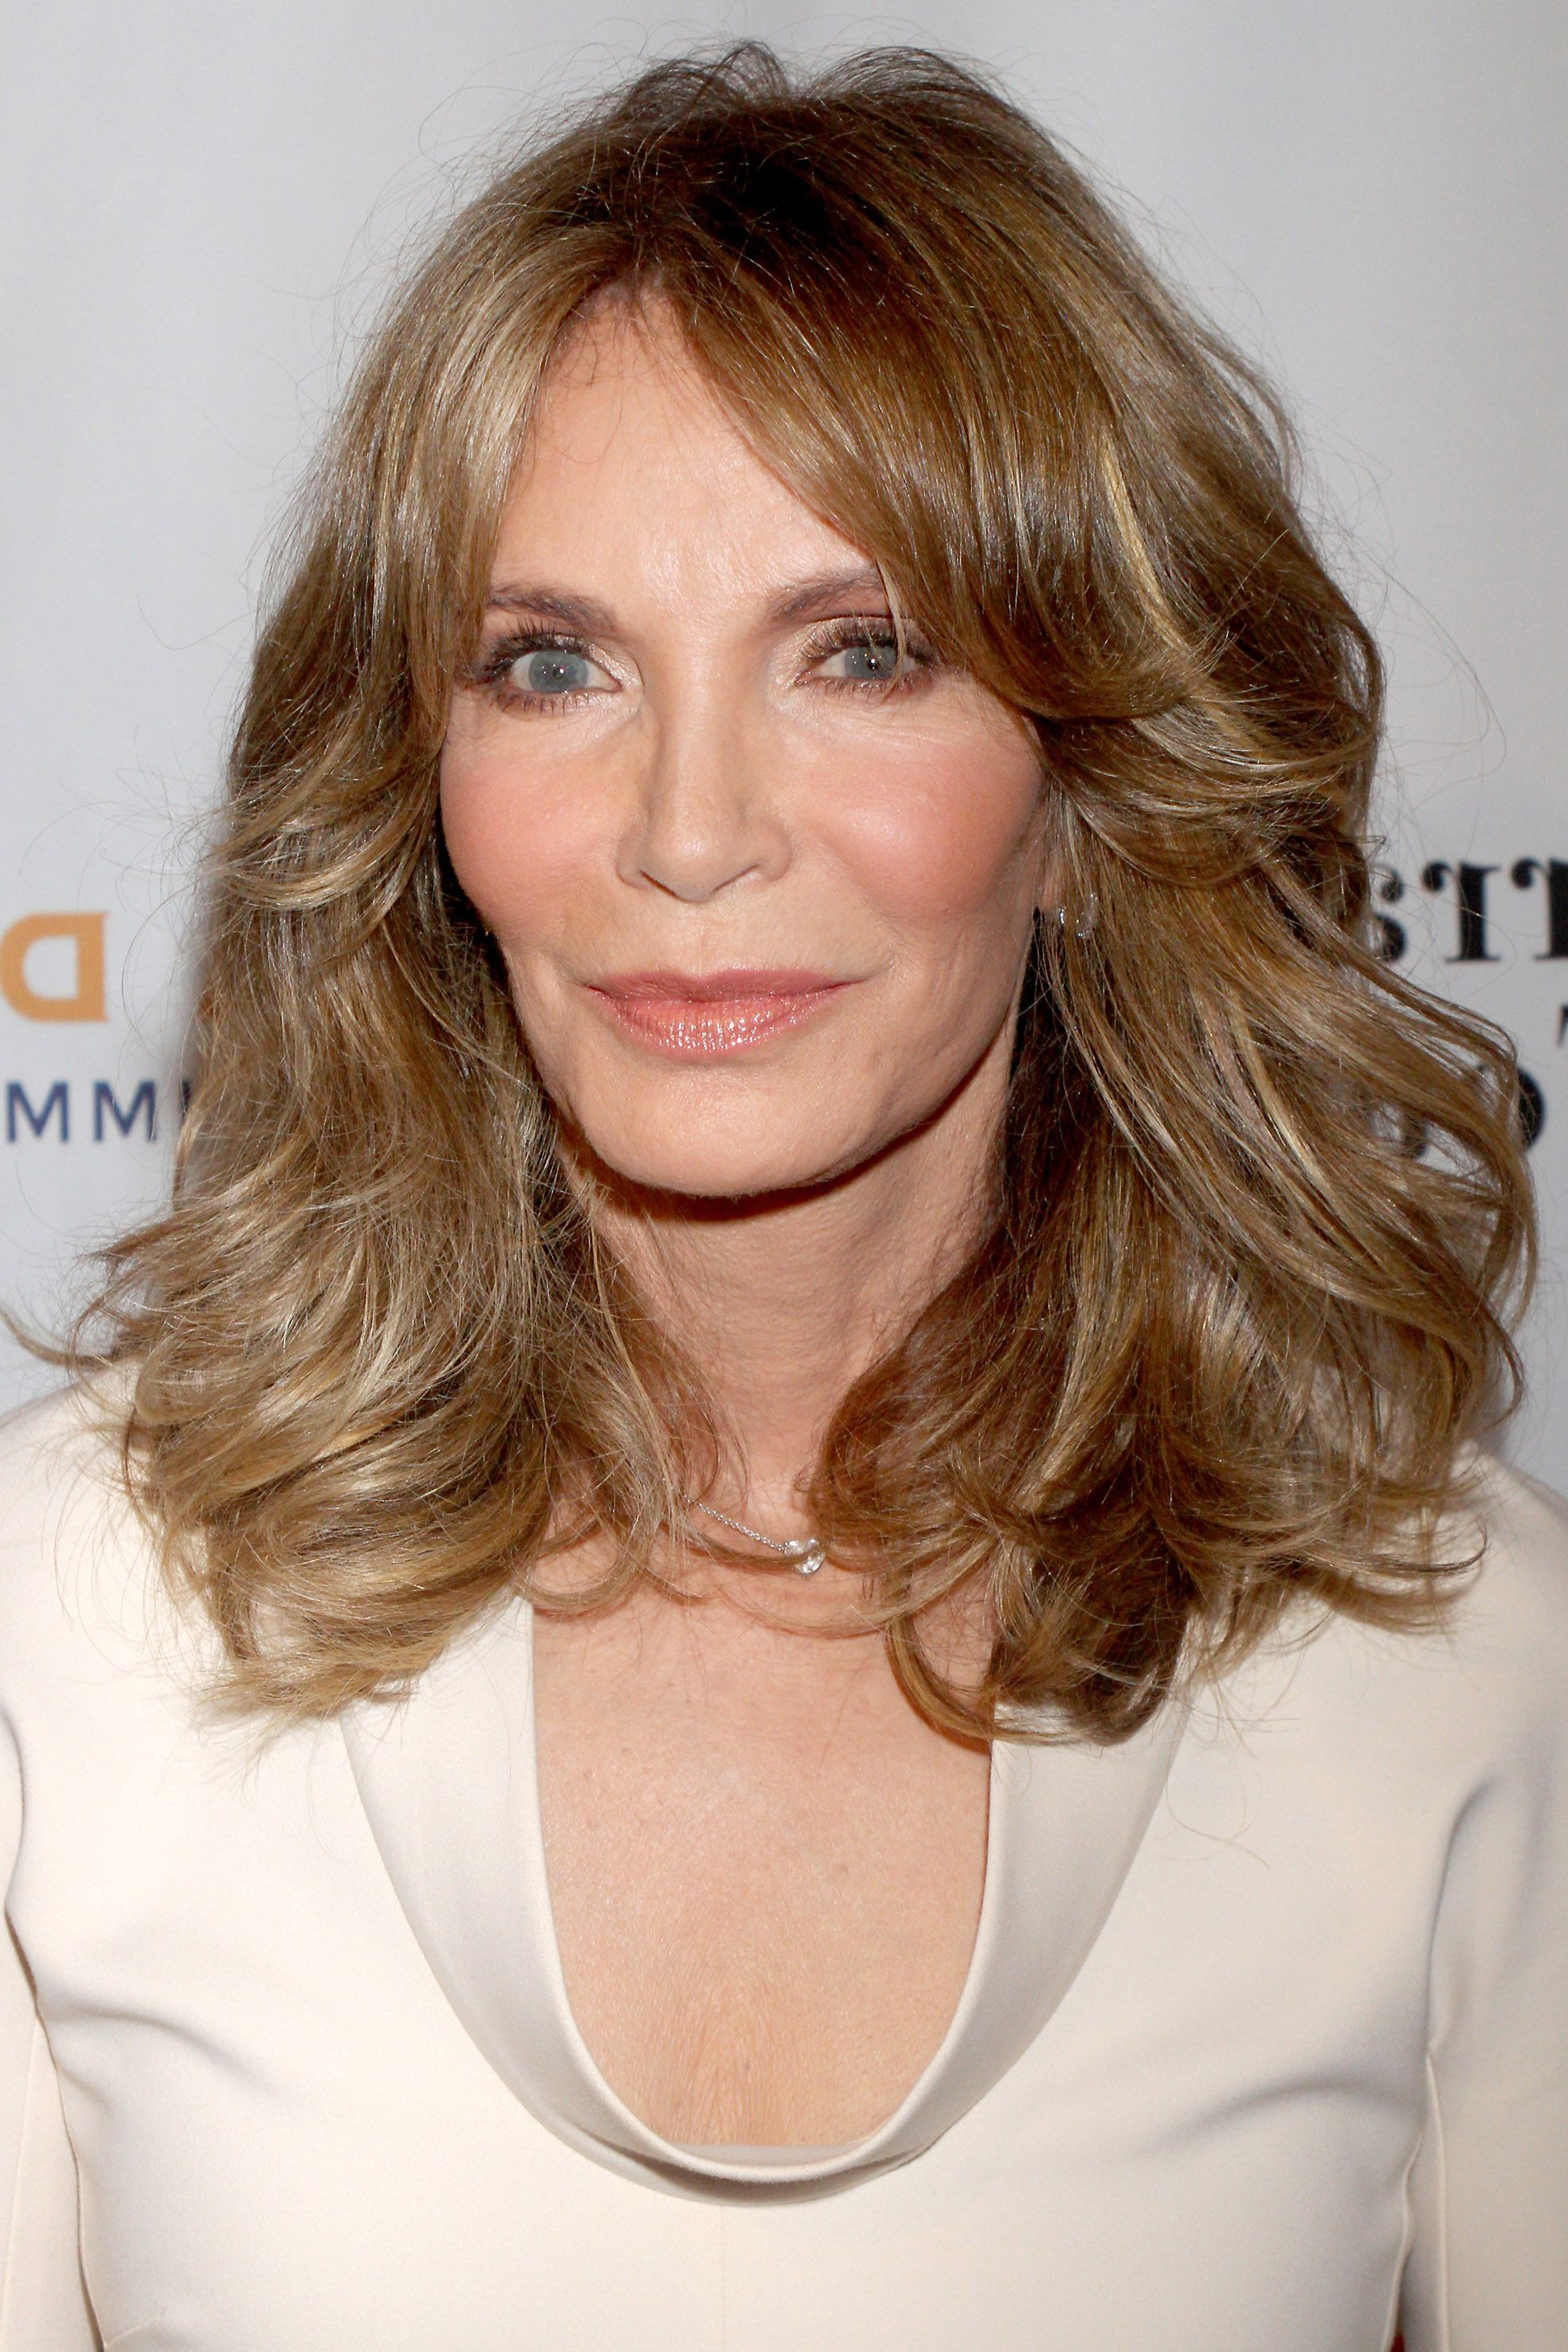 50 Best Hairstyles For Women Over 50 – Celebrity Haircuts Over 50 With Regard To Short Hair For Over 50S (View 19 of 25)